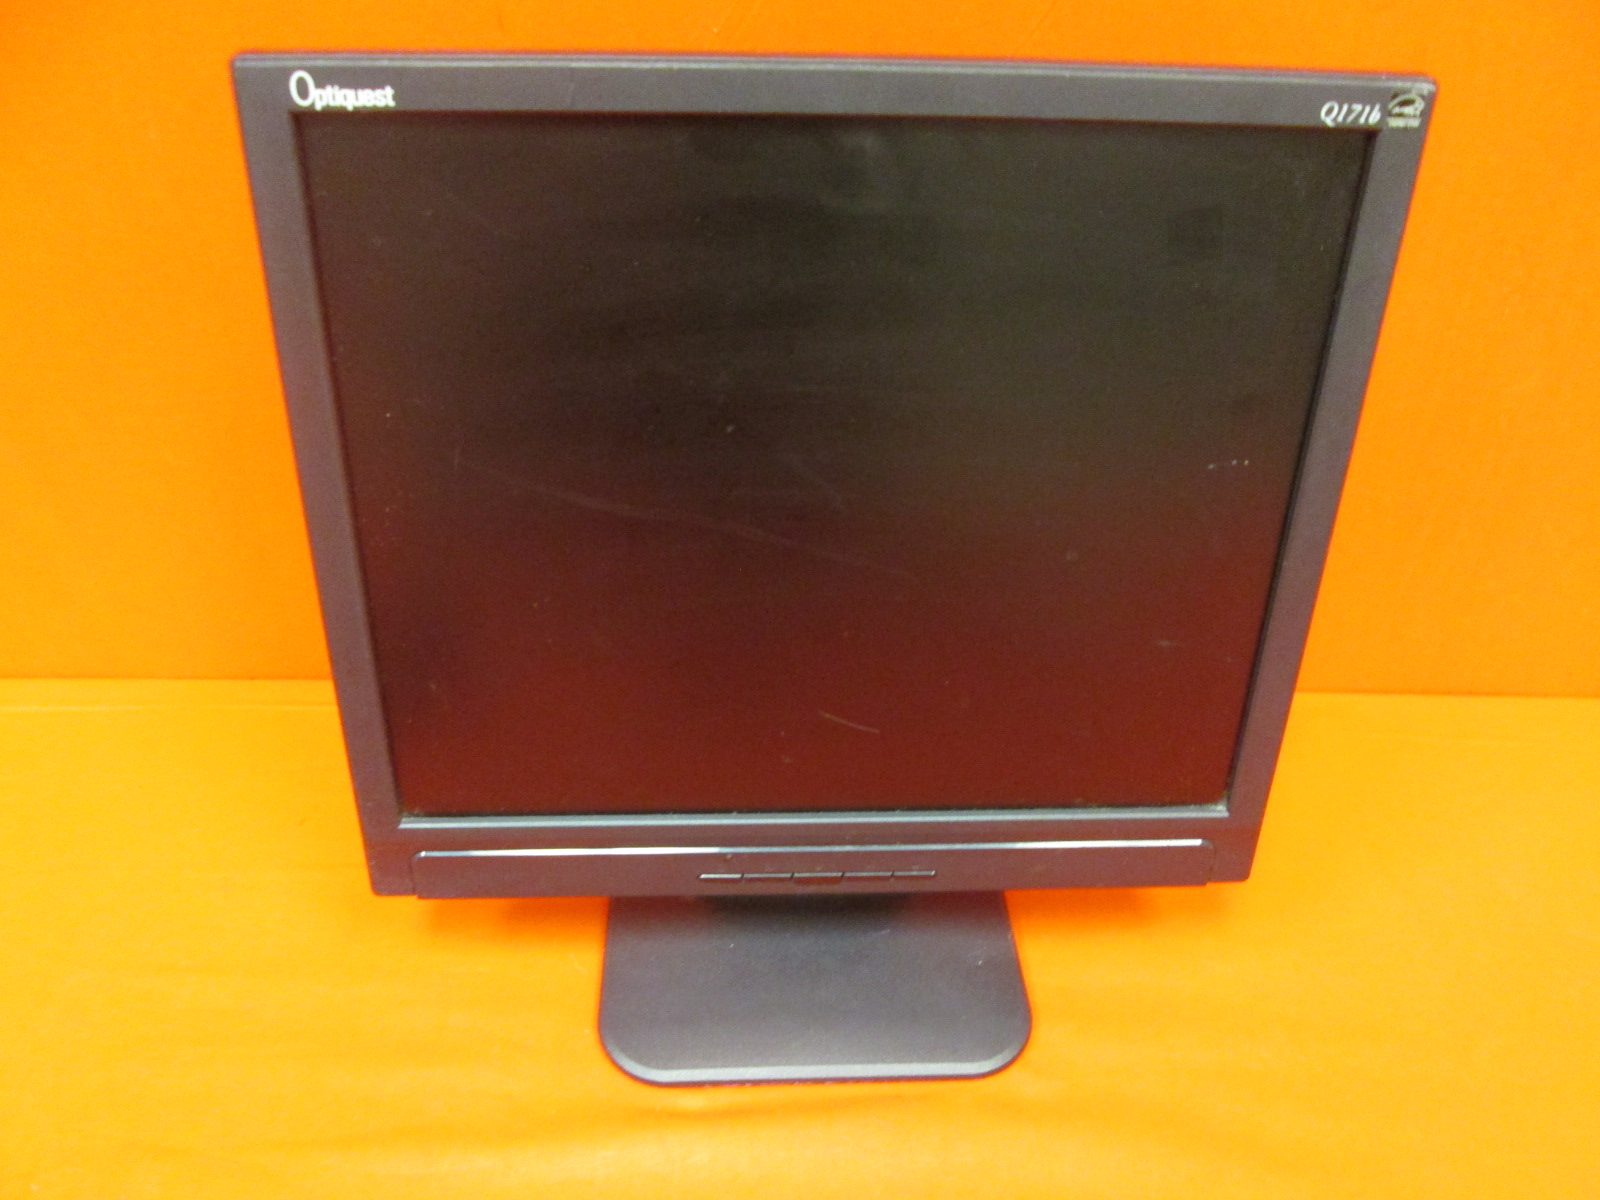 Optiquest Q171B 17 Inch LCD Monitor